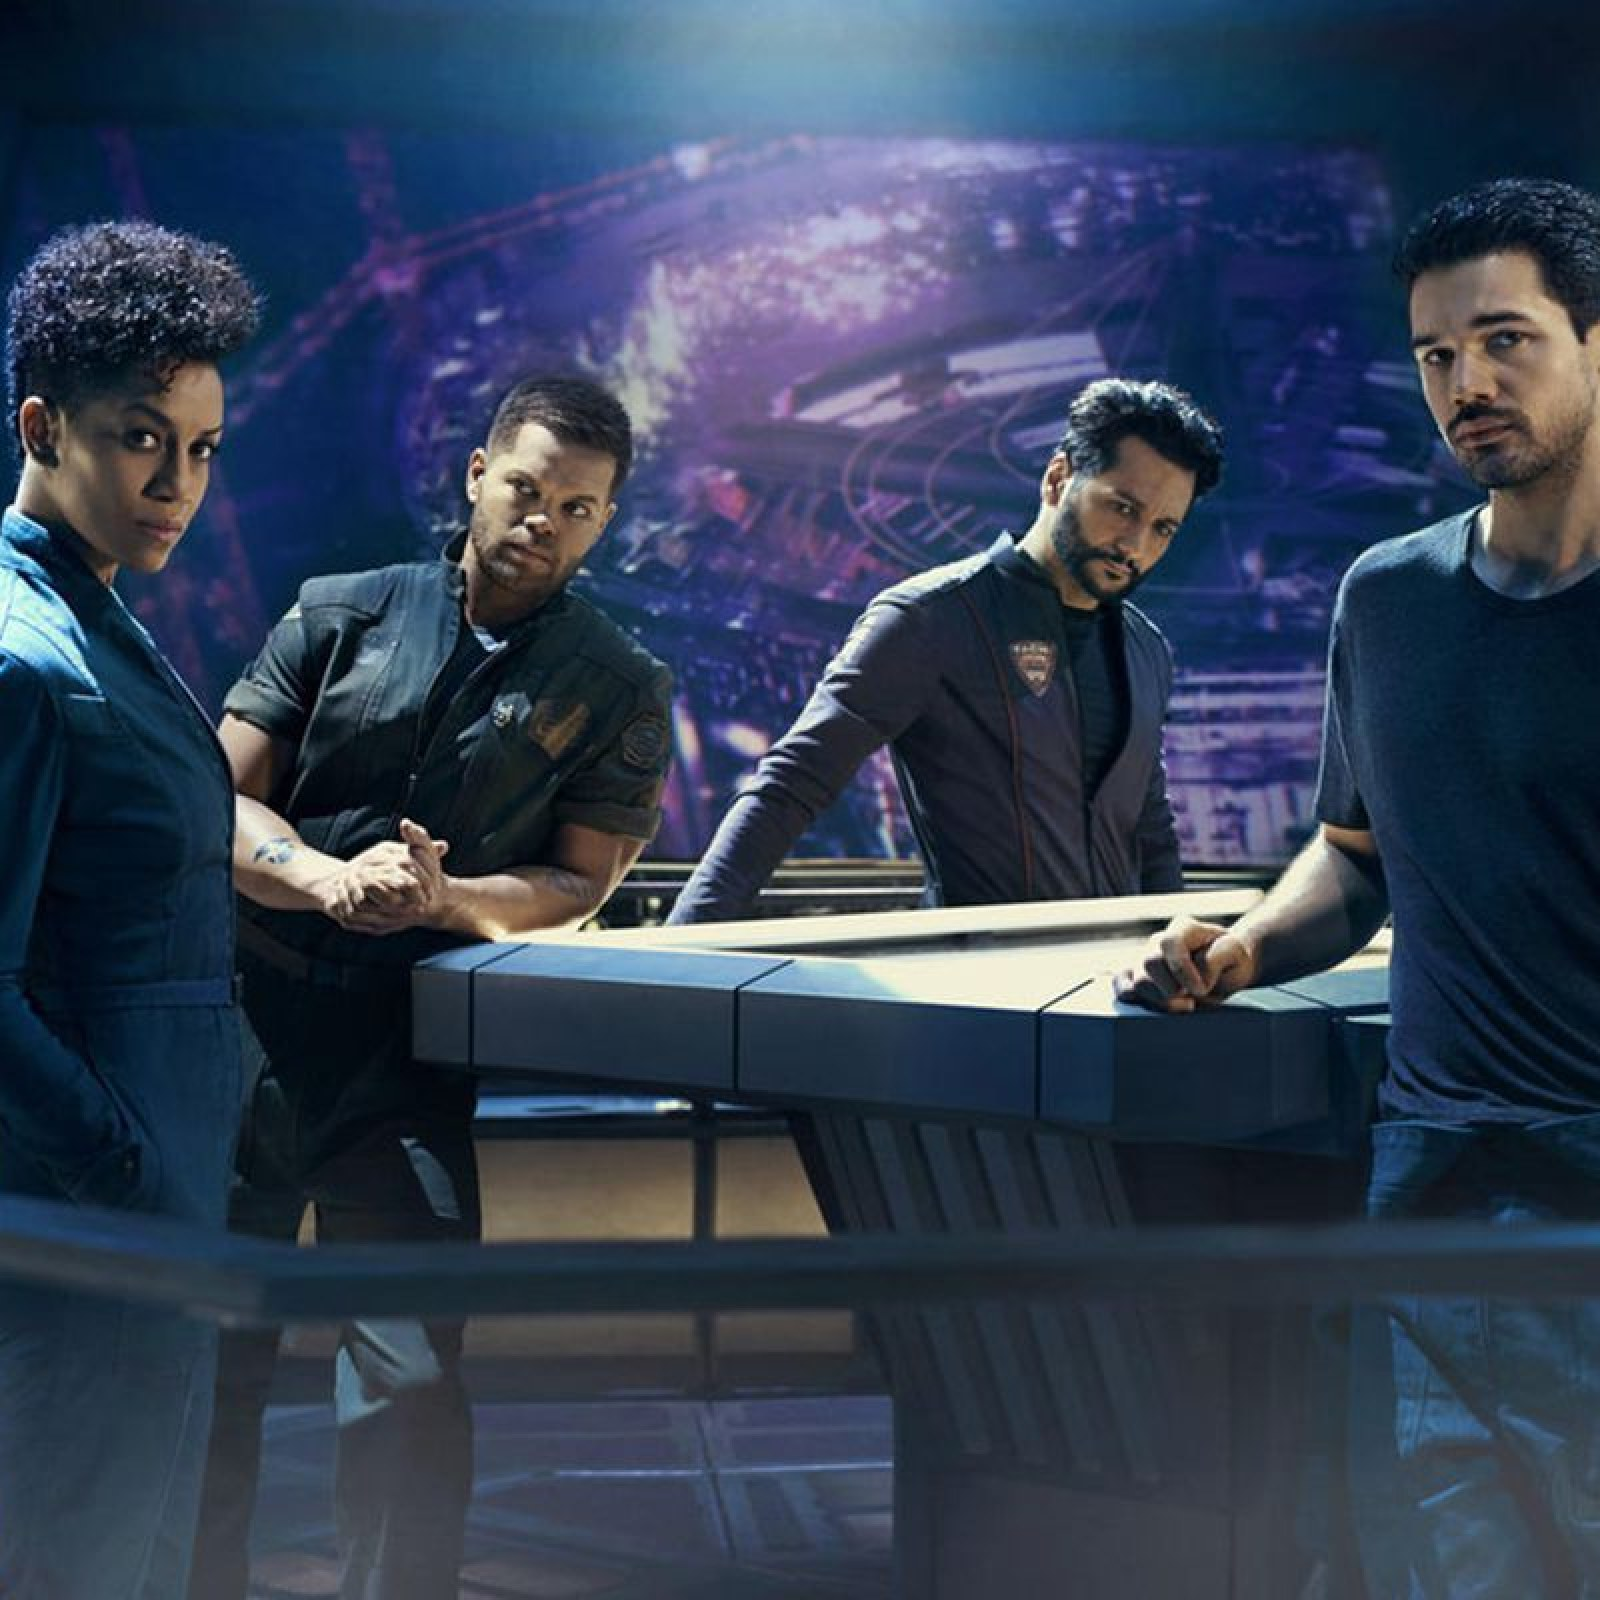 The Expanse' Season 4 Cast Adds Belters, Will See Return of